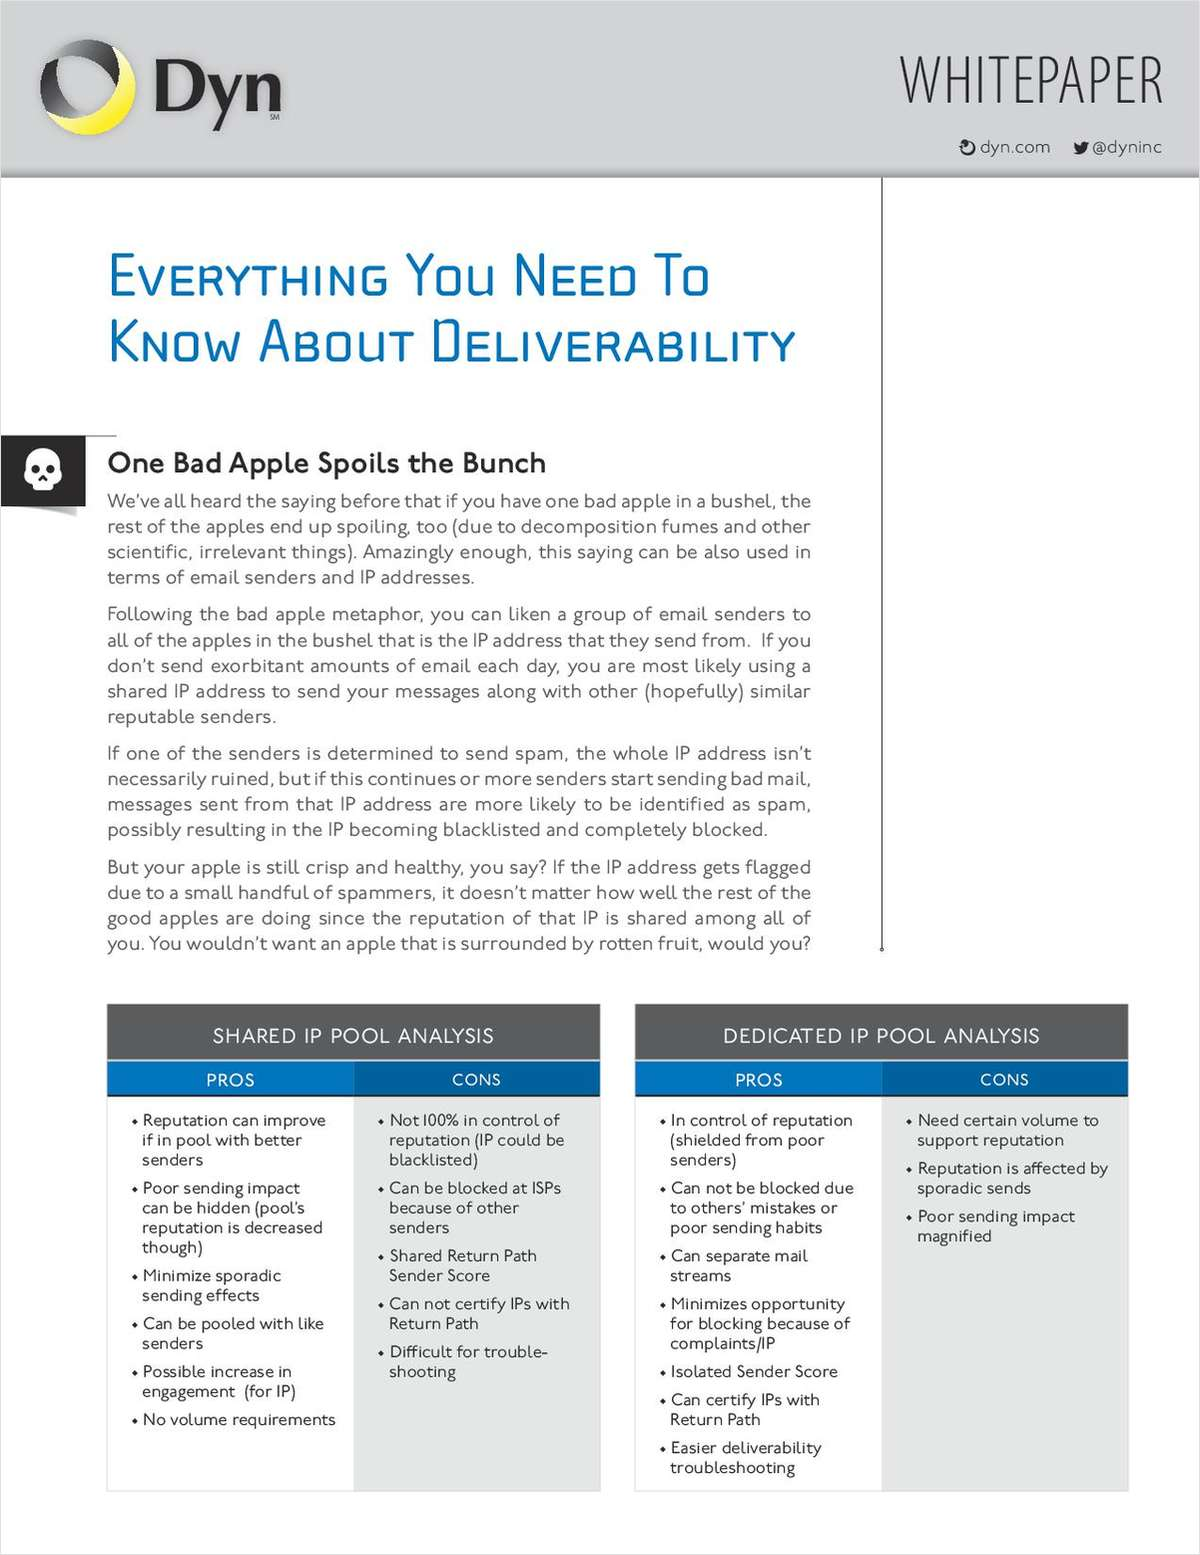 Everything You Need to Know About Deliverability